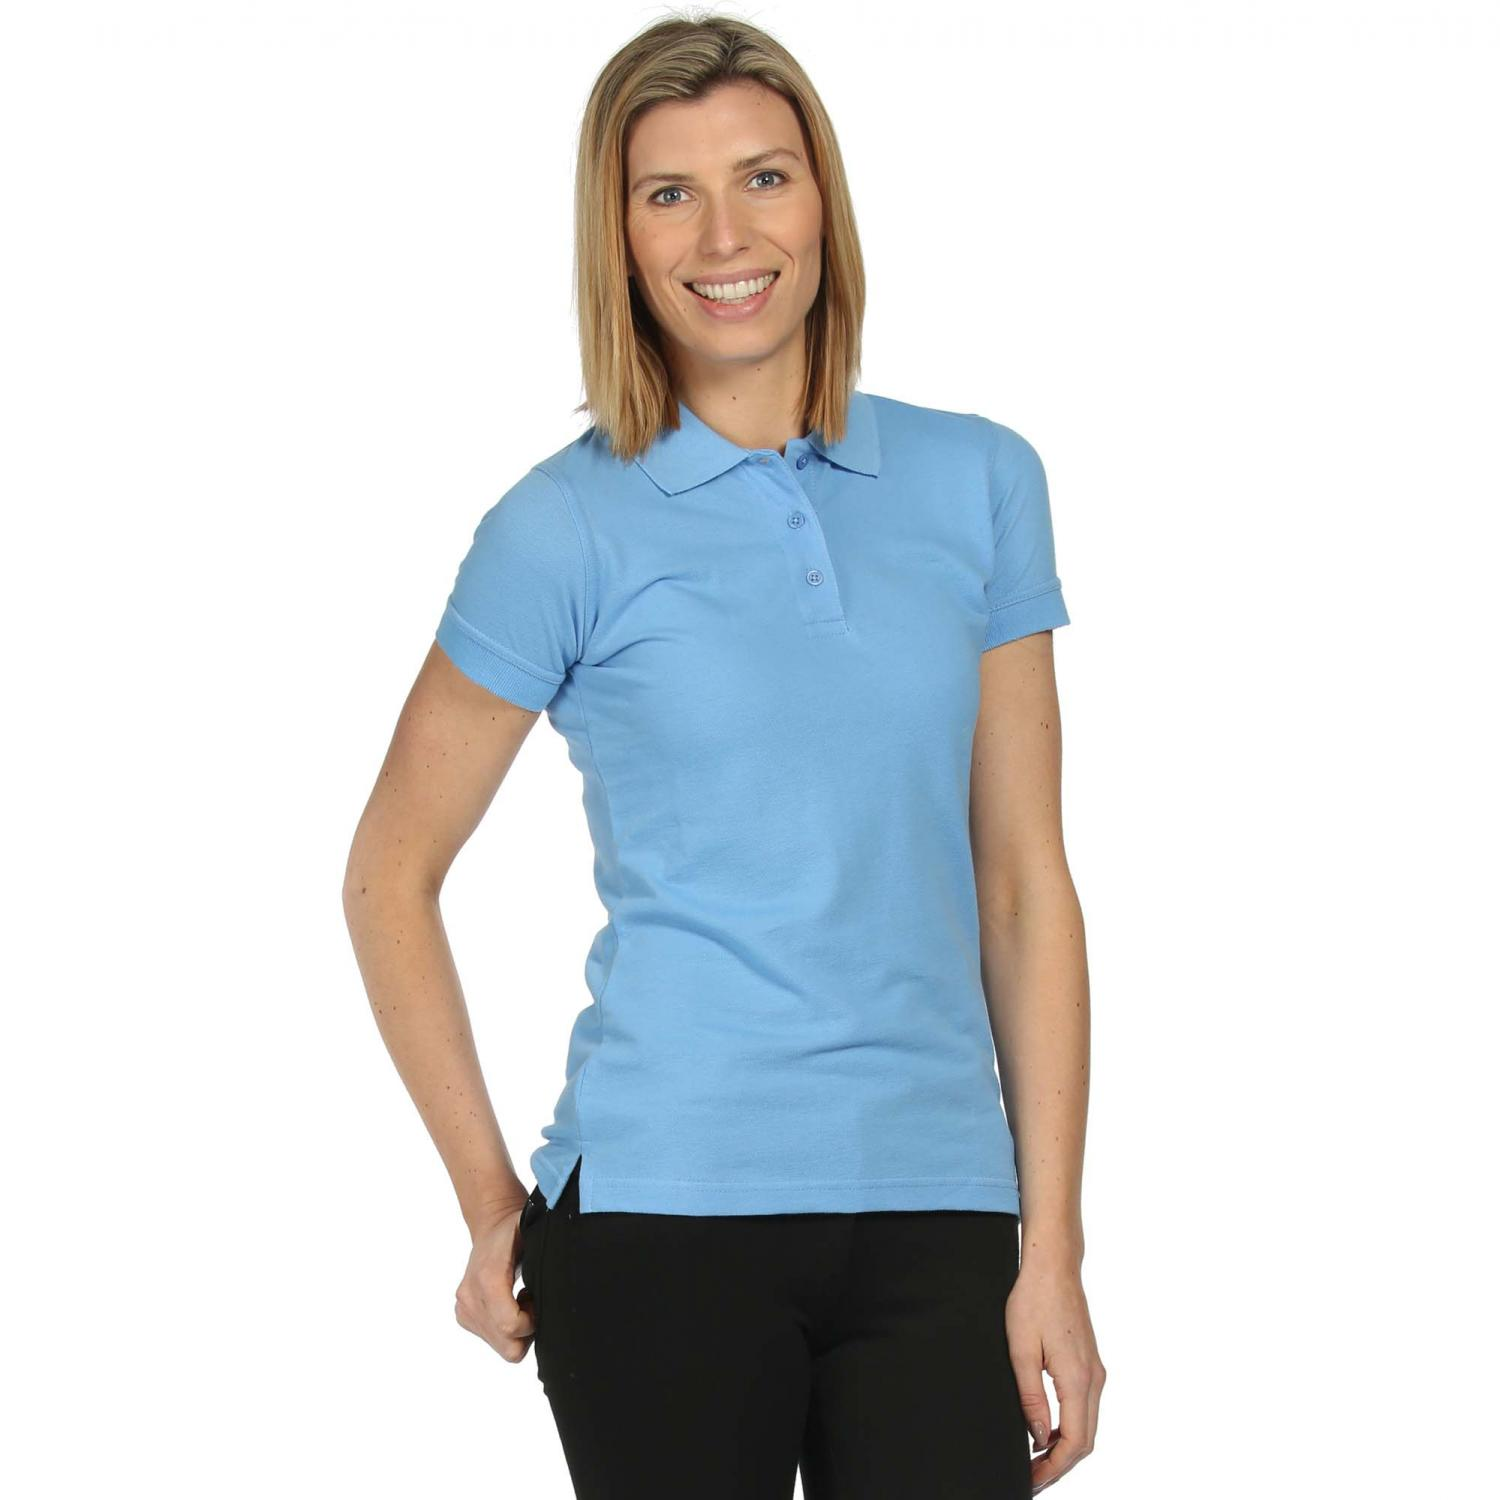 Womens Classic 65 35 Polo Shirt Blueskies